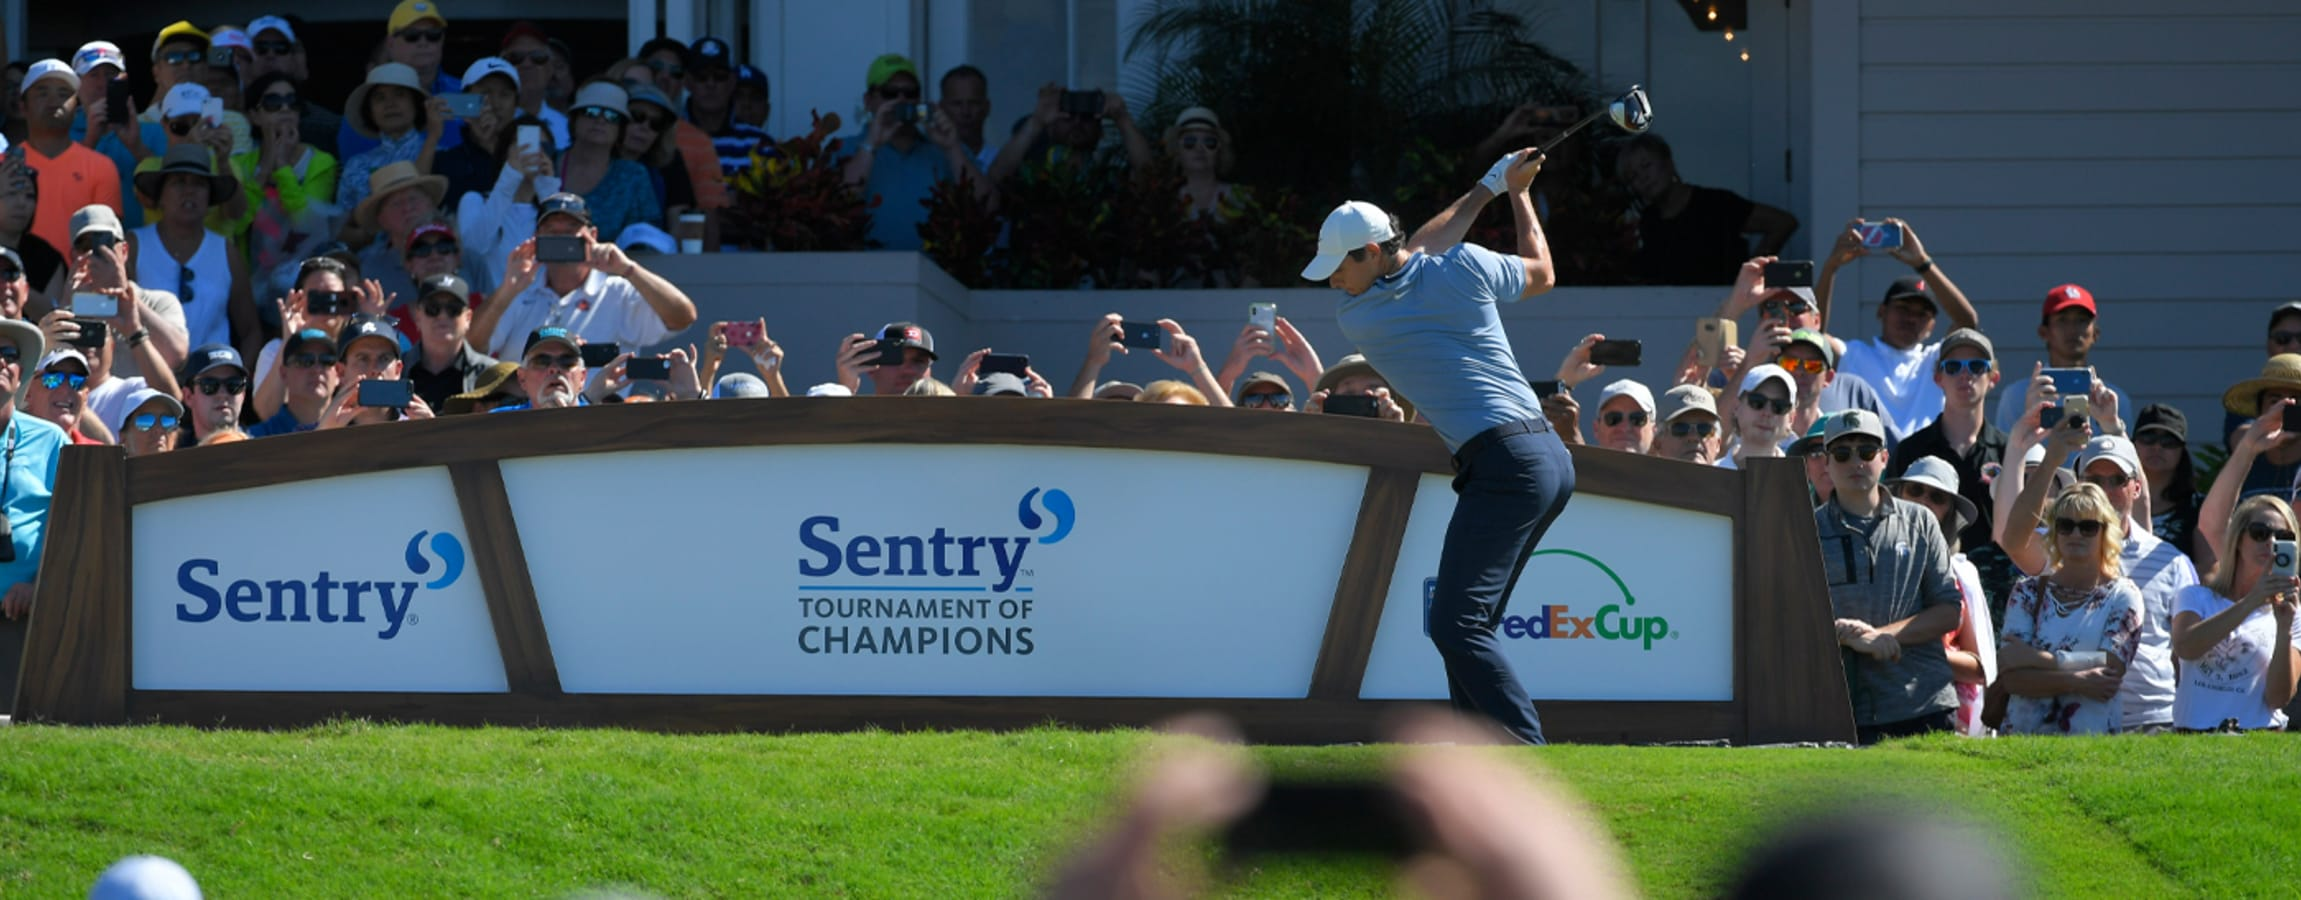 Pga Tour Tickets 2020 2020 Sentry Tournament of Champions Tickets Now Available